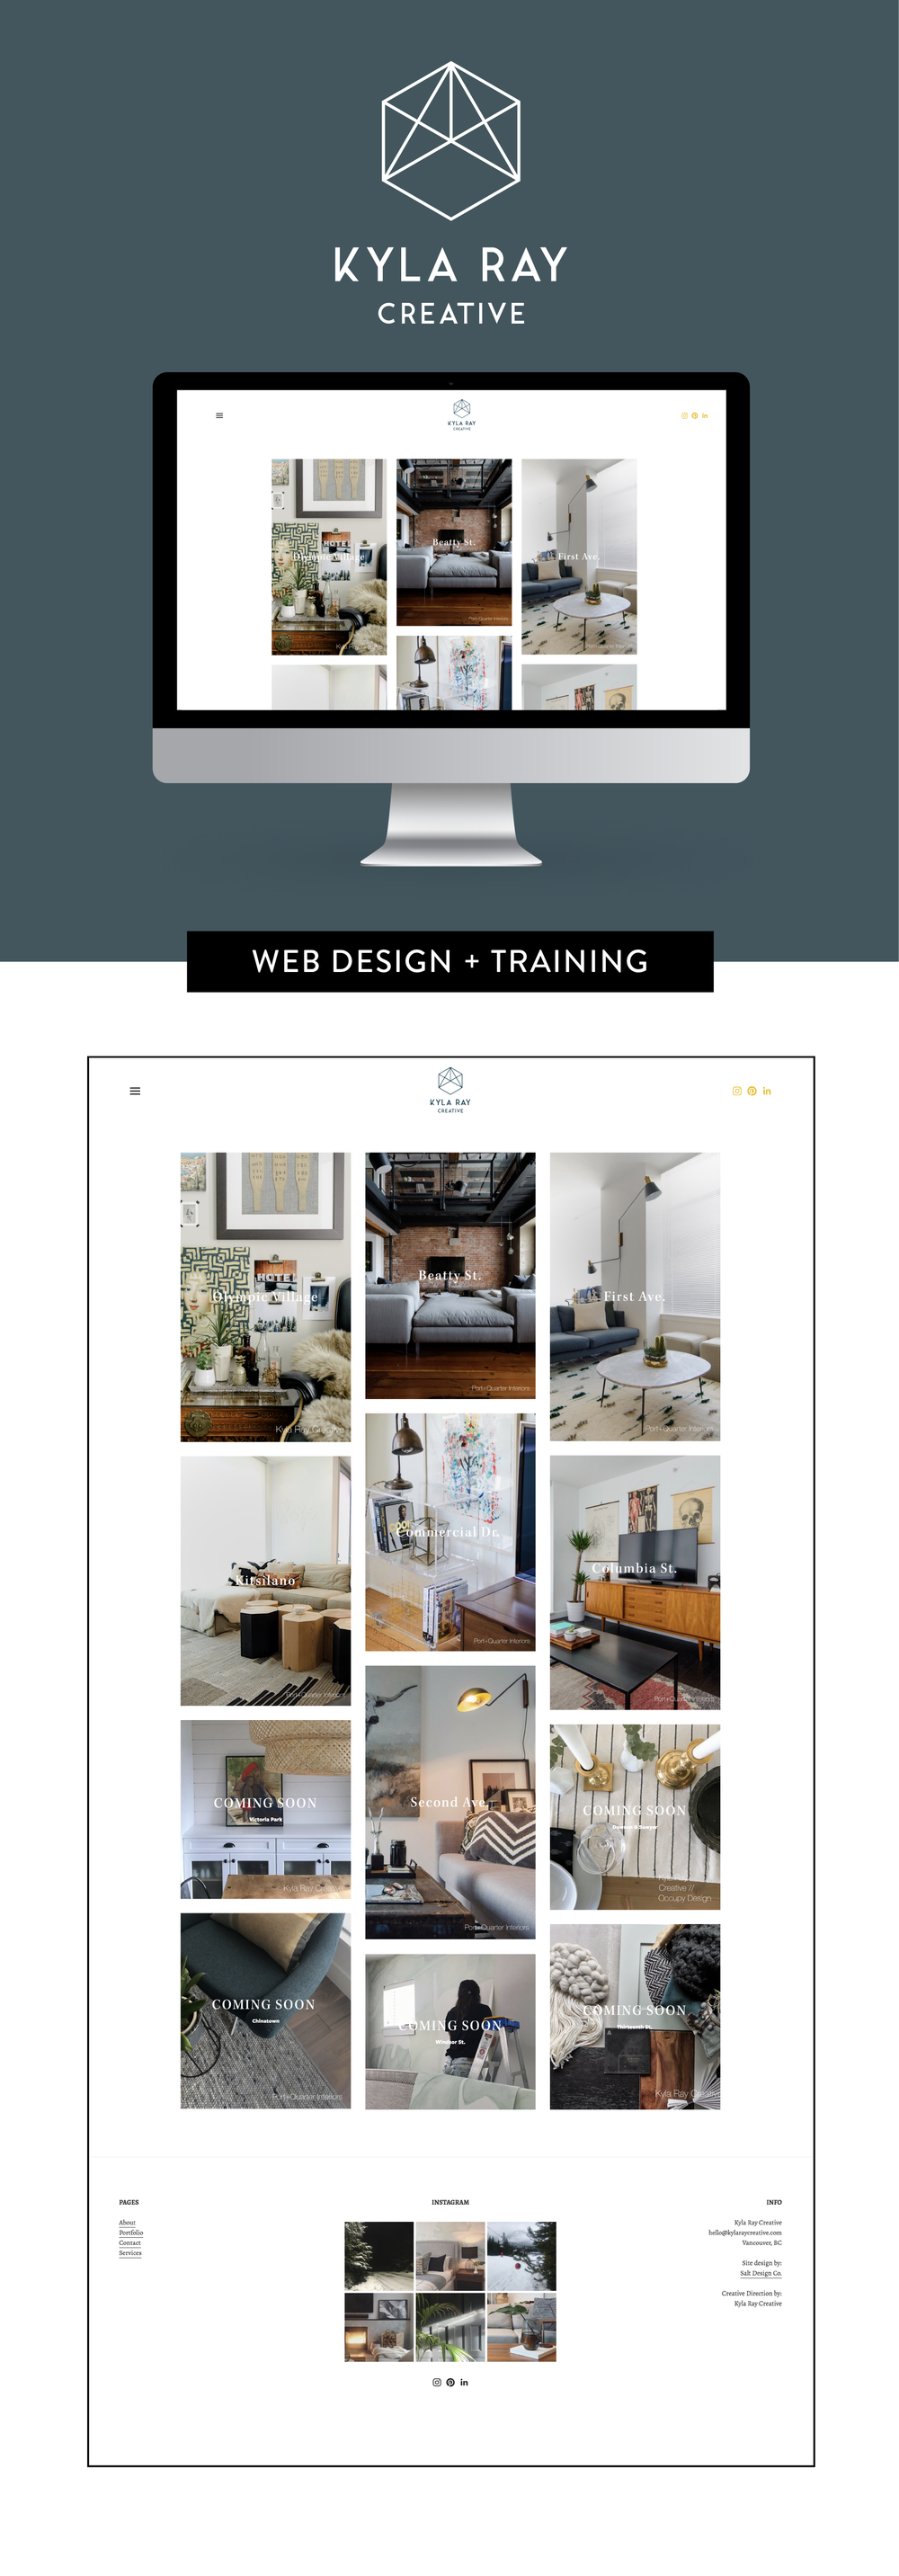 Squarespace web design and training for Kyla Ray Creative by Salt Design Co.